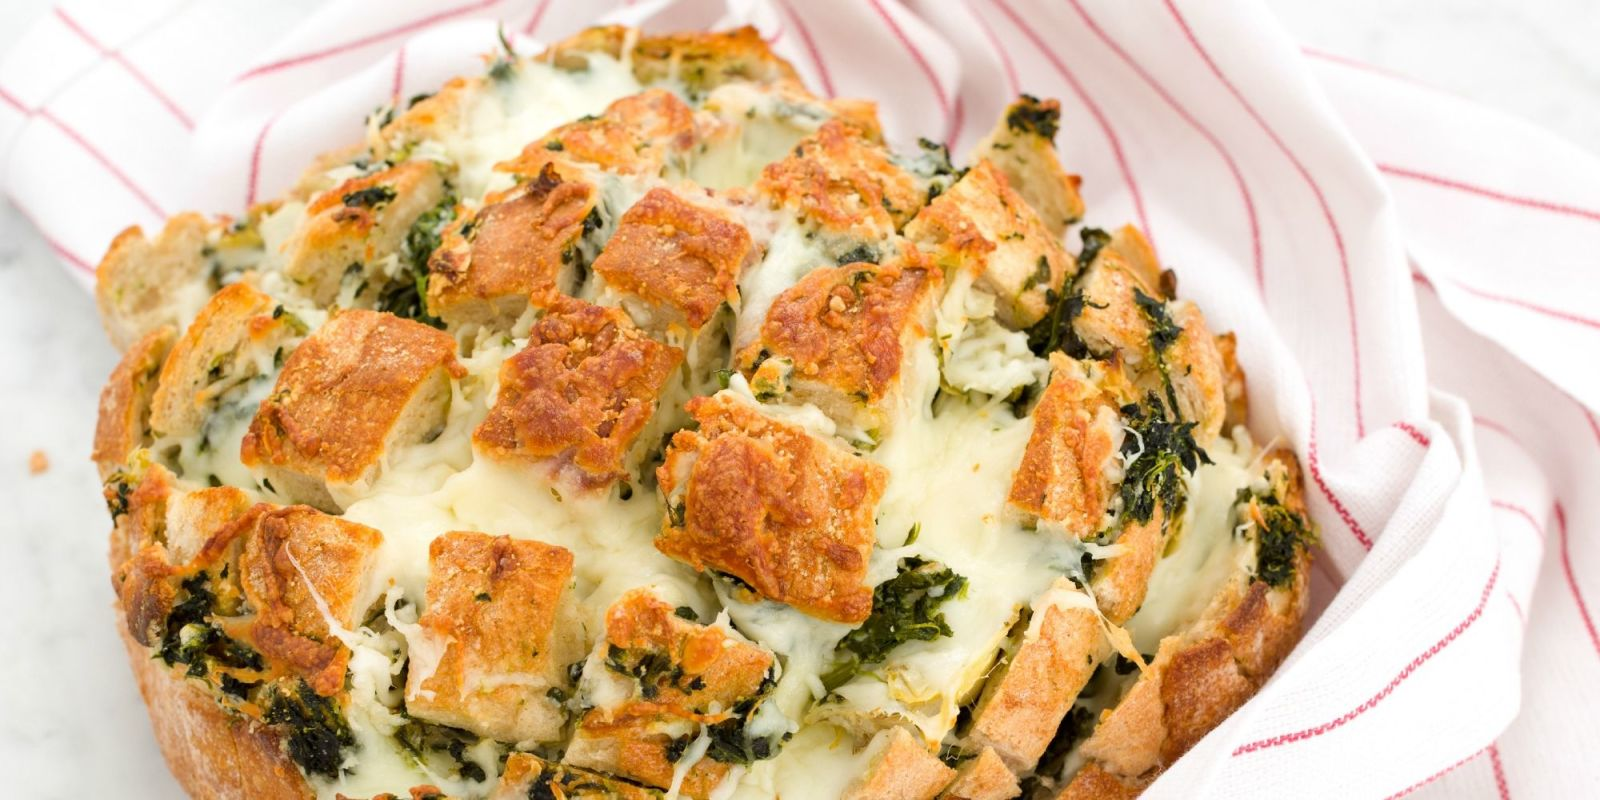 ... Pull-Apart Bread Recipe - How to Make Spinach and Artichoke Pull-Apart